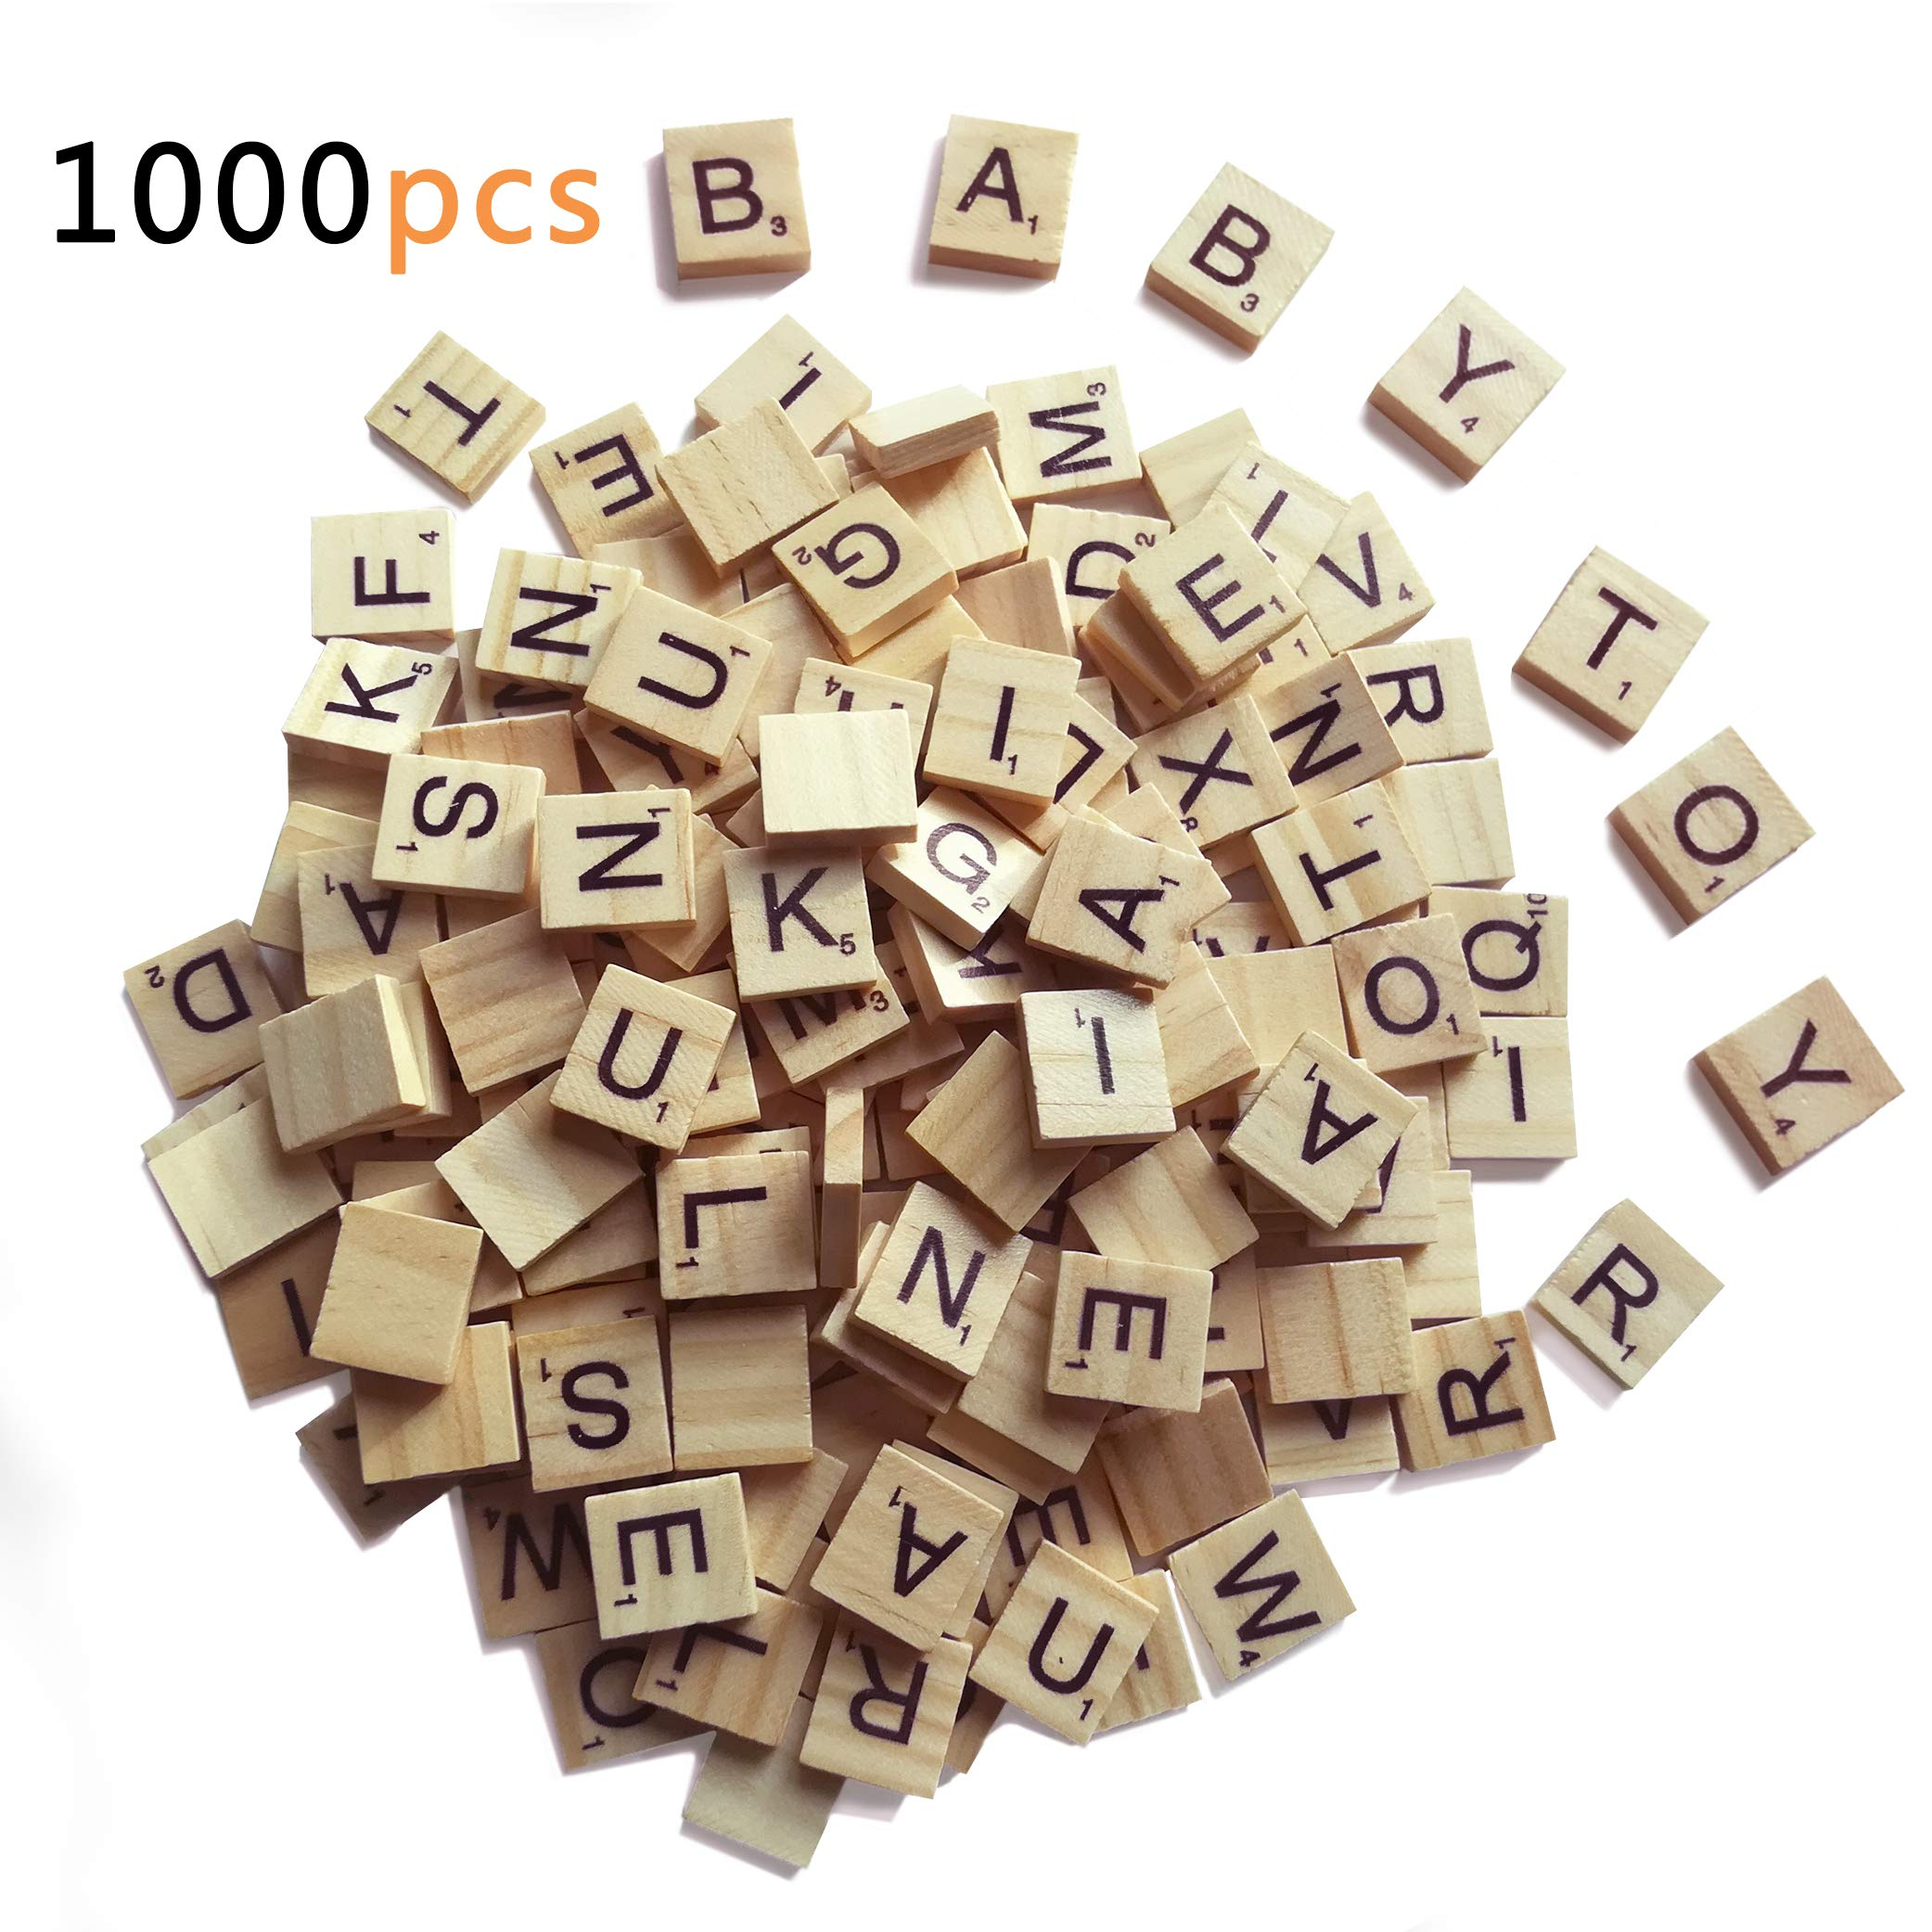 1000 Scrabble Letters for Crafts - Wood Scrabble Tiles - DIY Wood Gift Decoration - Making Alphabet Coasters and Scrabble Crossword Game by QMET